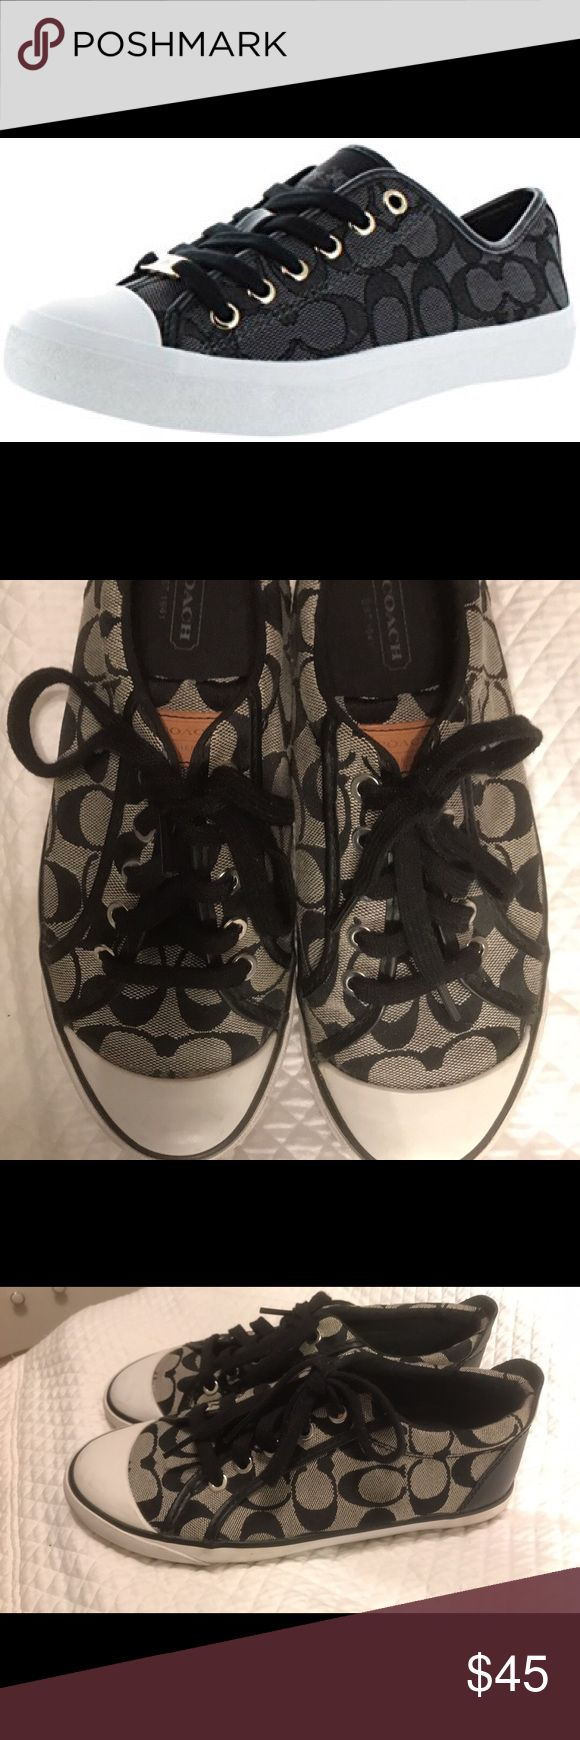 Coach sneakers Worn twice !! Gray and black Coach Shoes Sneakers